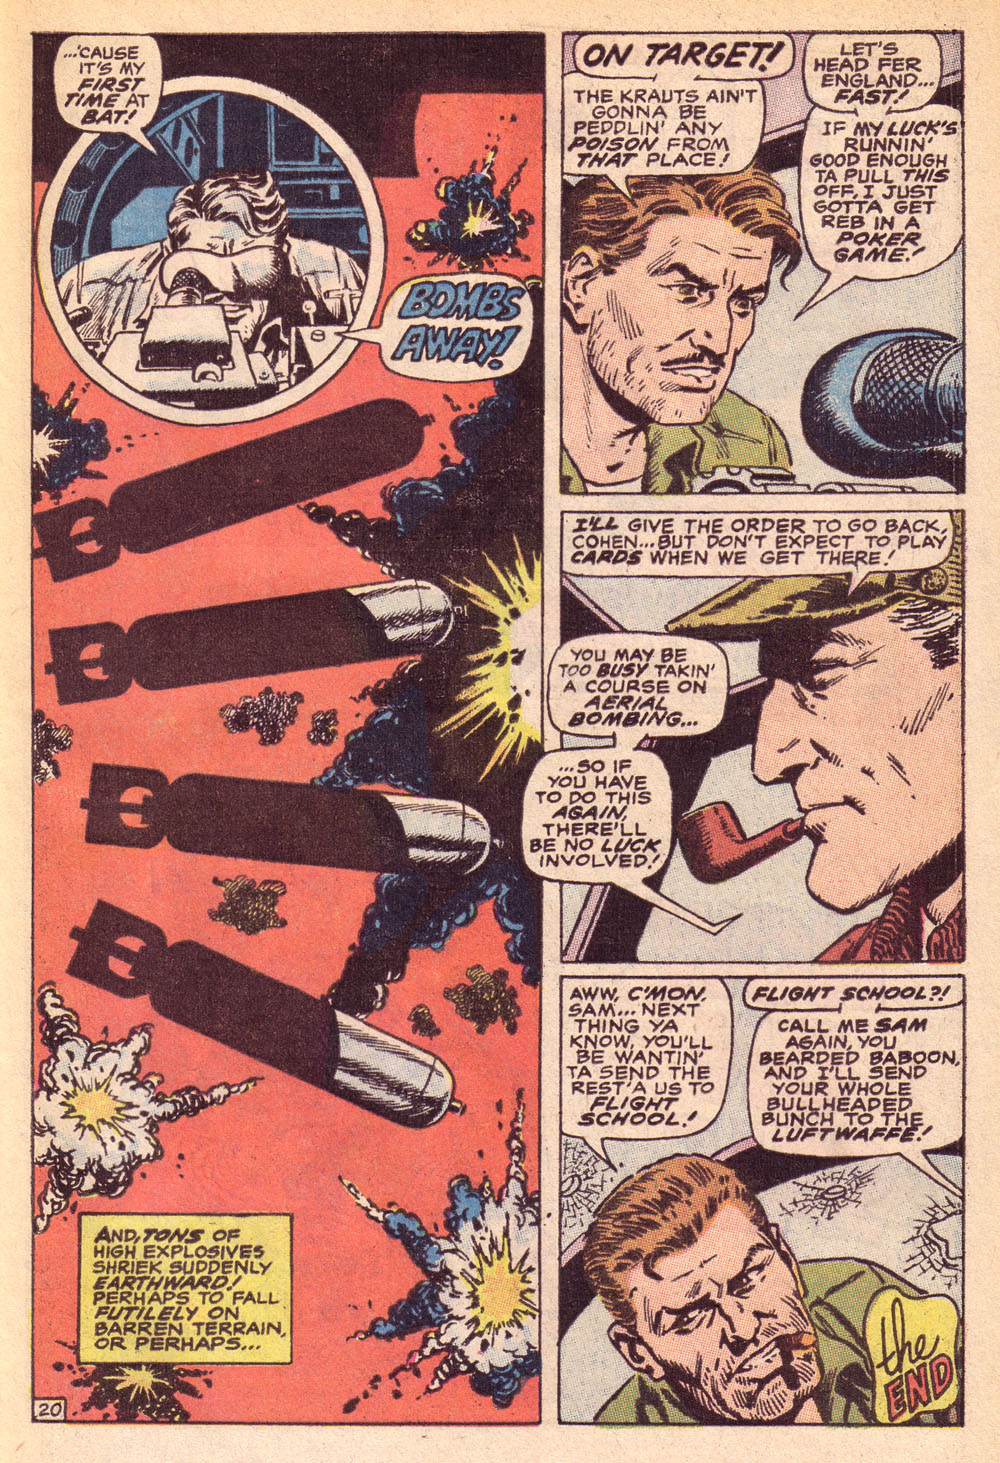 Read online Sgt. Fury comic -  Issue #74 - 29